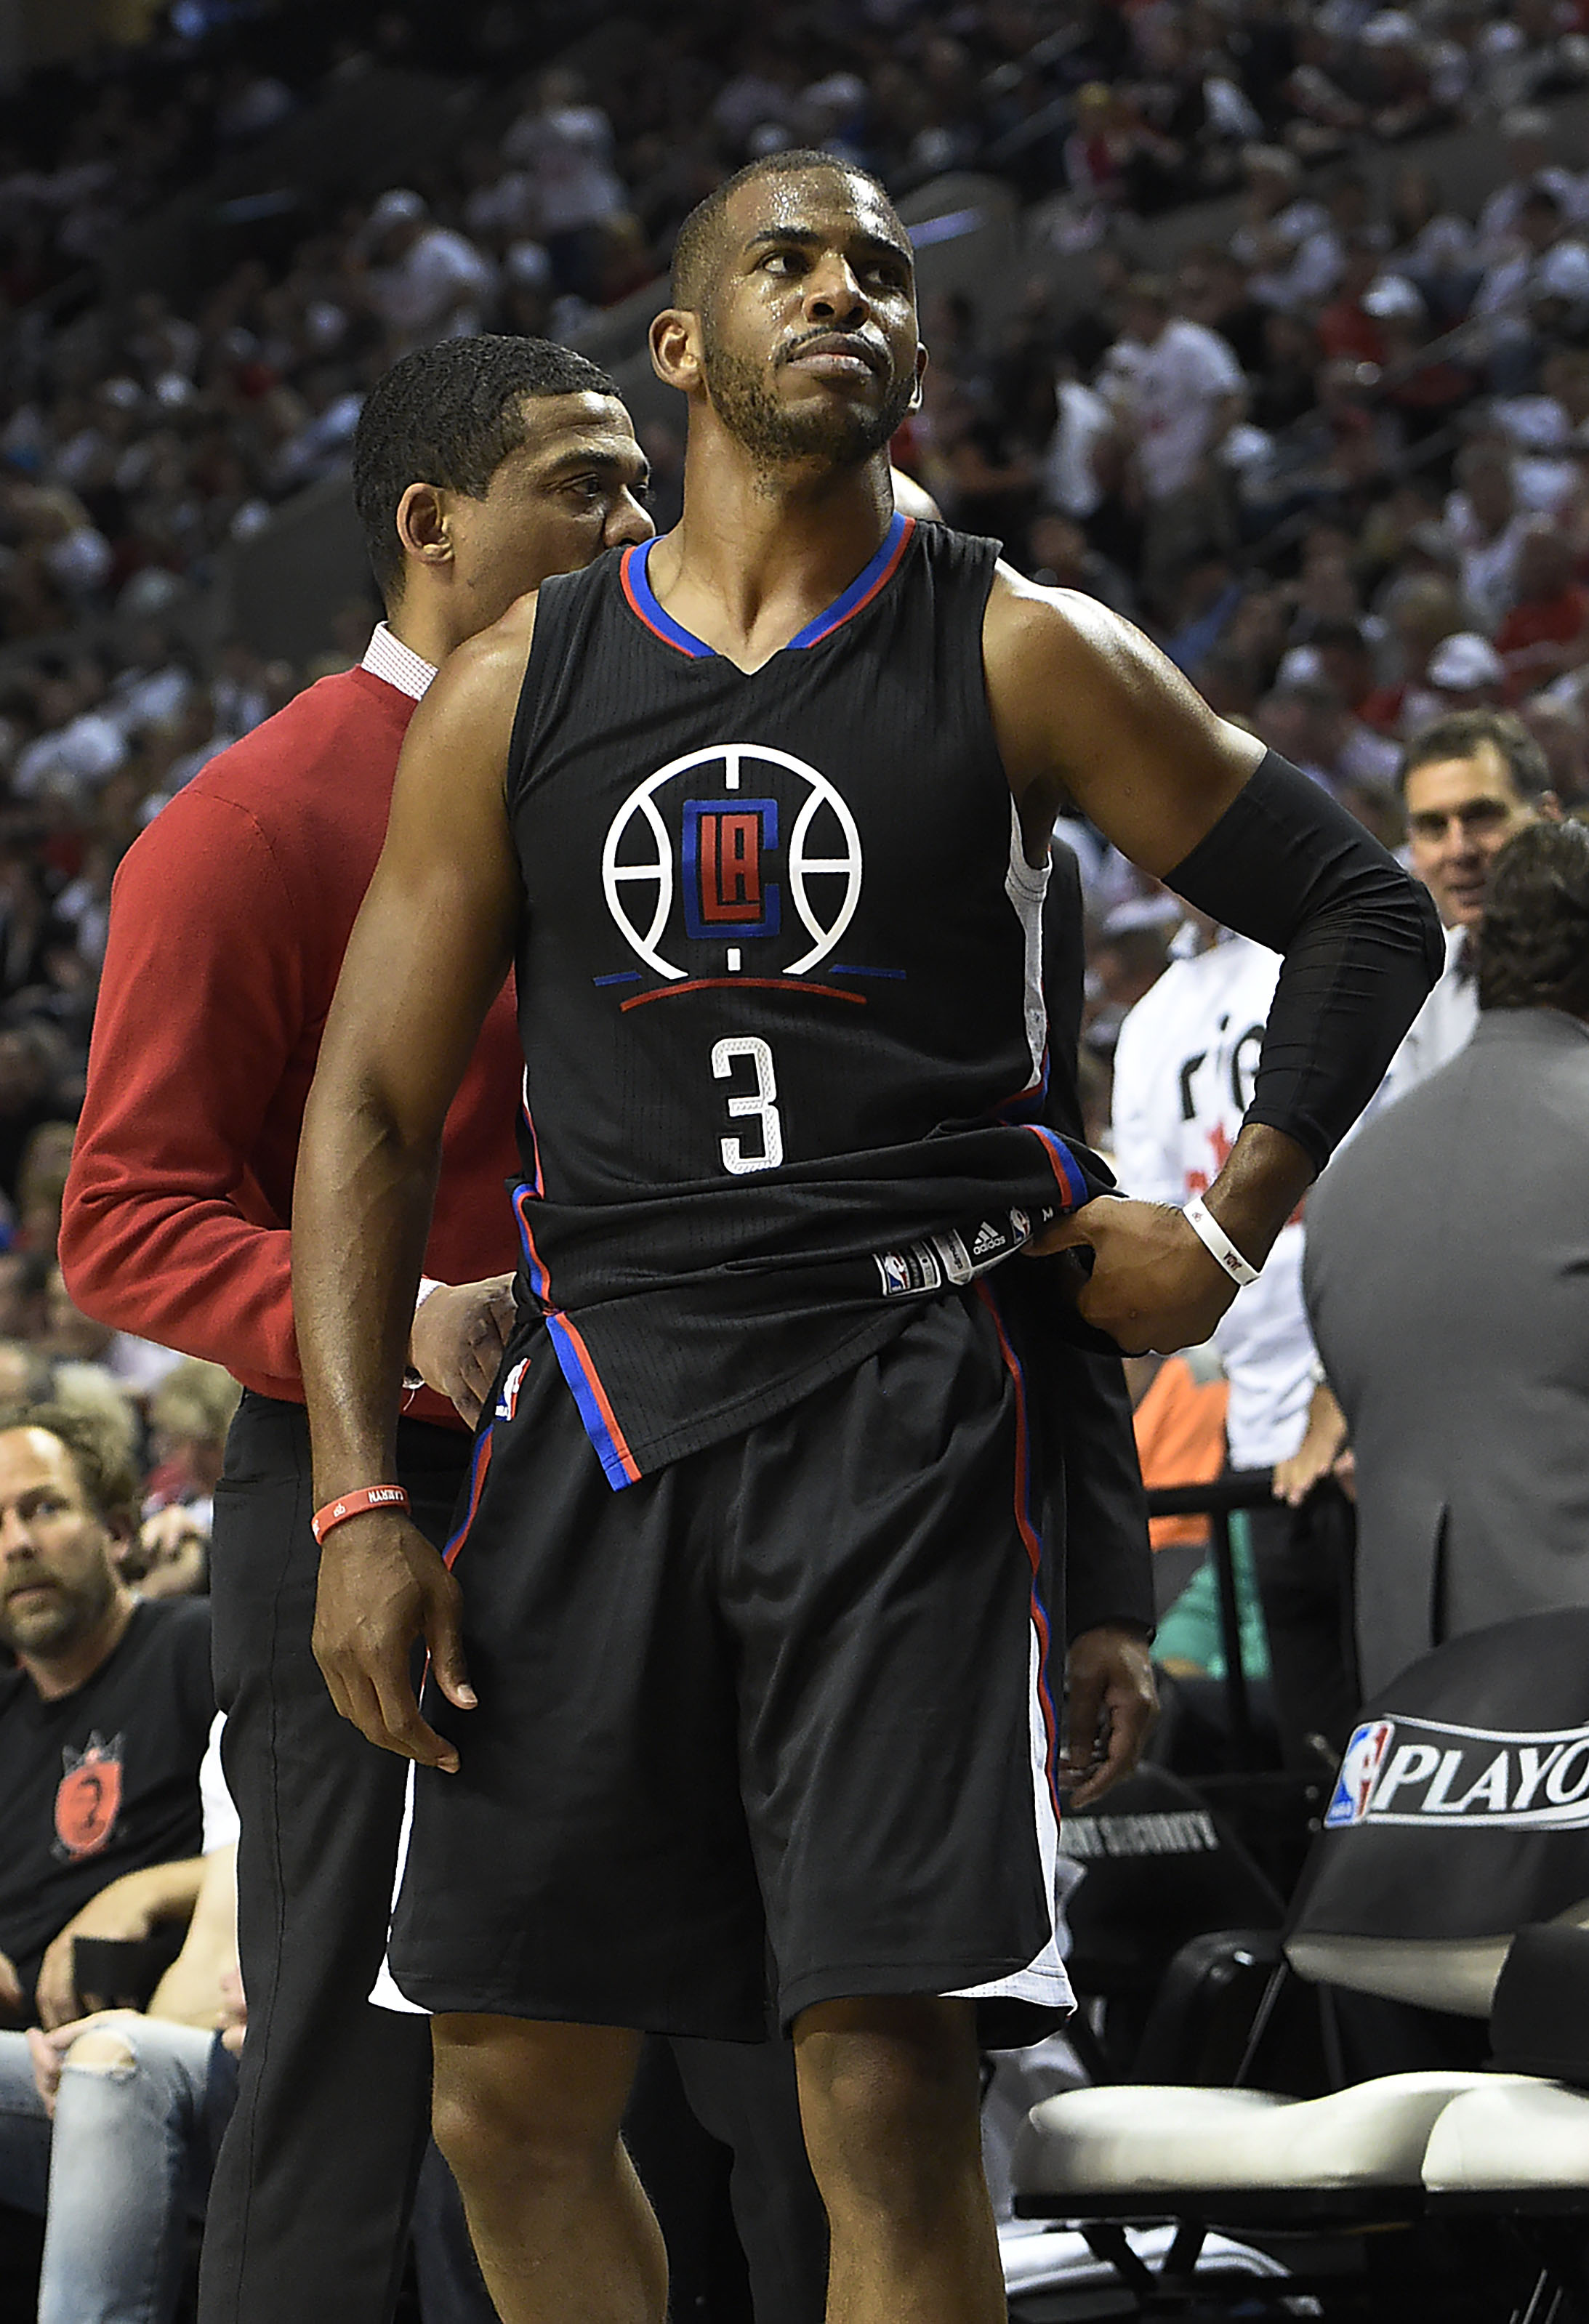 PORTLAND, OR - APRIL 25: Chris Paul #3 of the Los Angeles Clippers walks off the court after he injured his hand in the third quarter of Game Four of the Western Conference Quarterfinals against the Portland Trail Blazers during the 2016 NBA Playoffs at the Moda Center on April 25, 2016 in Portland, Oregon. The Blazers won the game 98-84. NOTE TO USER: User expressly acknowledges and agrees that by downloading and/or using this photograph, user is consenting to the terms and conditions of the Getty Images License Agreement.   Steve Dykes/Getty Images/AFP